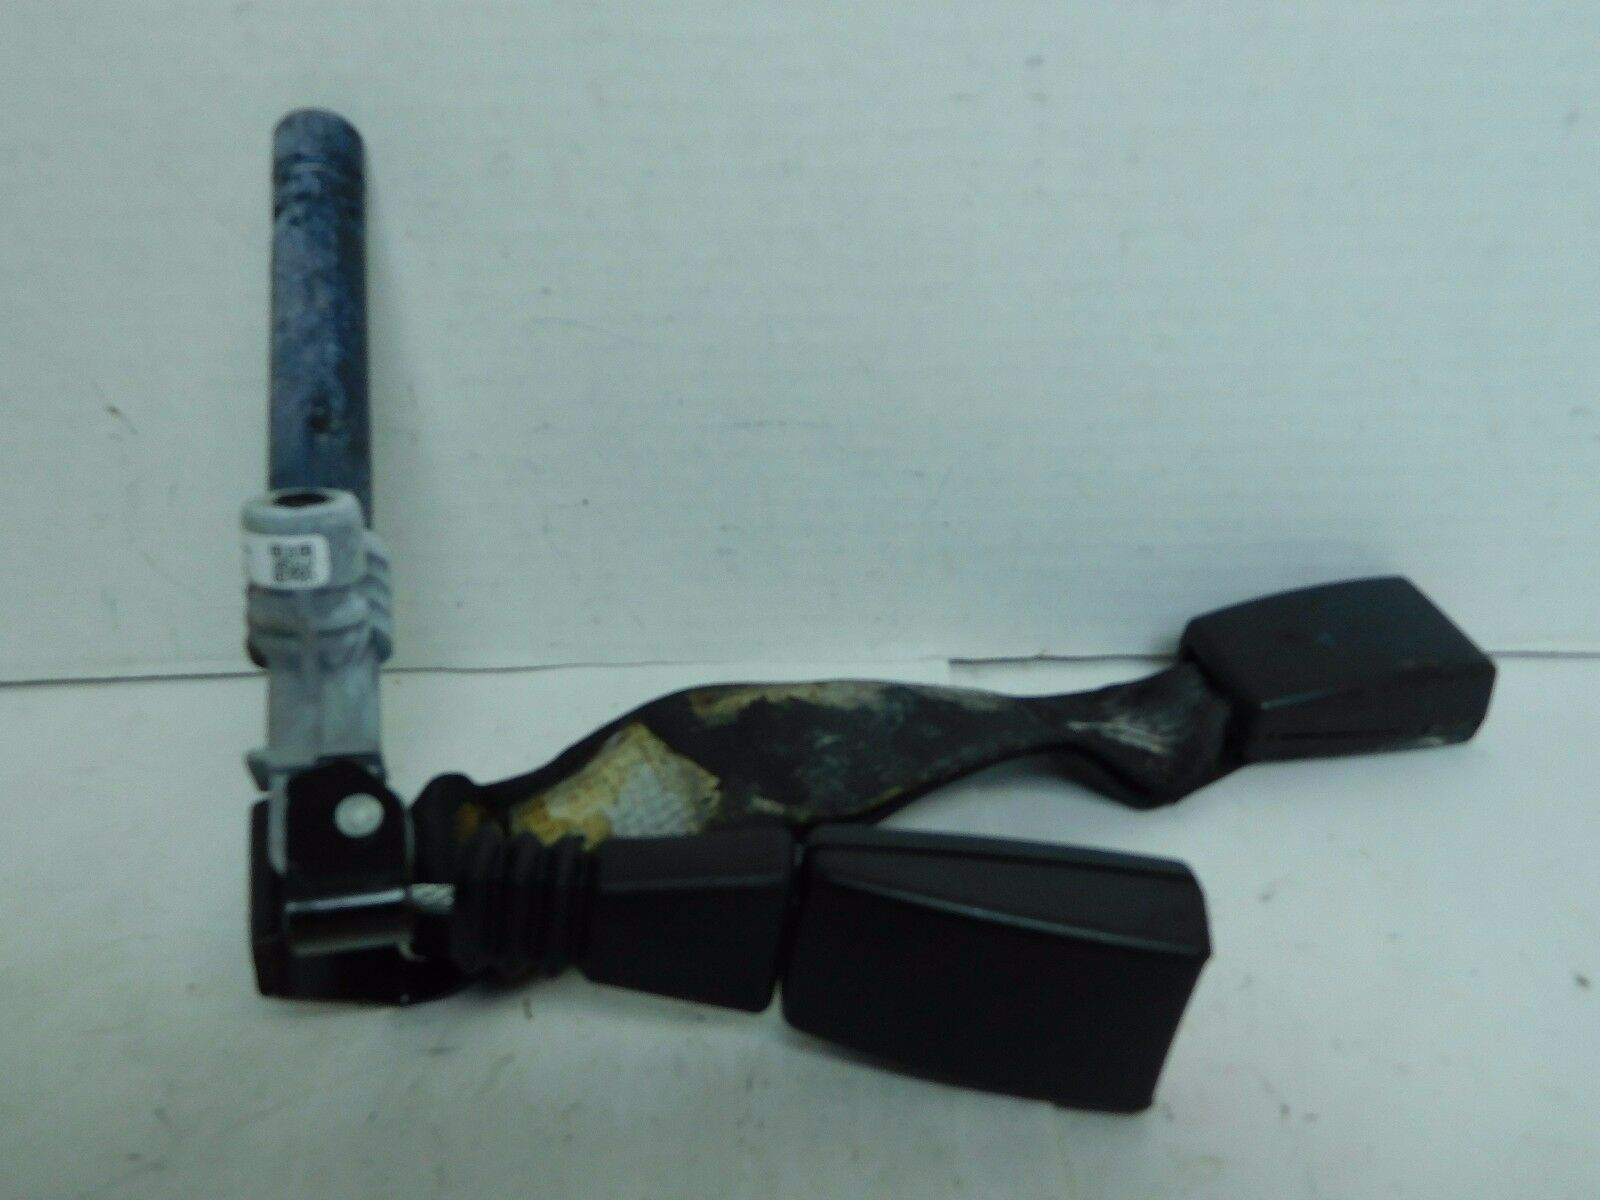 06 07 08 BMW 325i E90 3 Series Rear Right Seat Belt Buckle Tensioner OEM